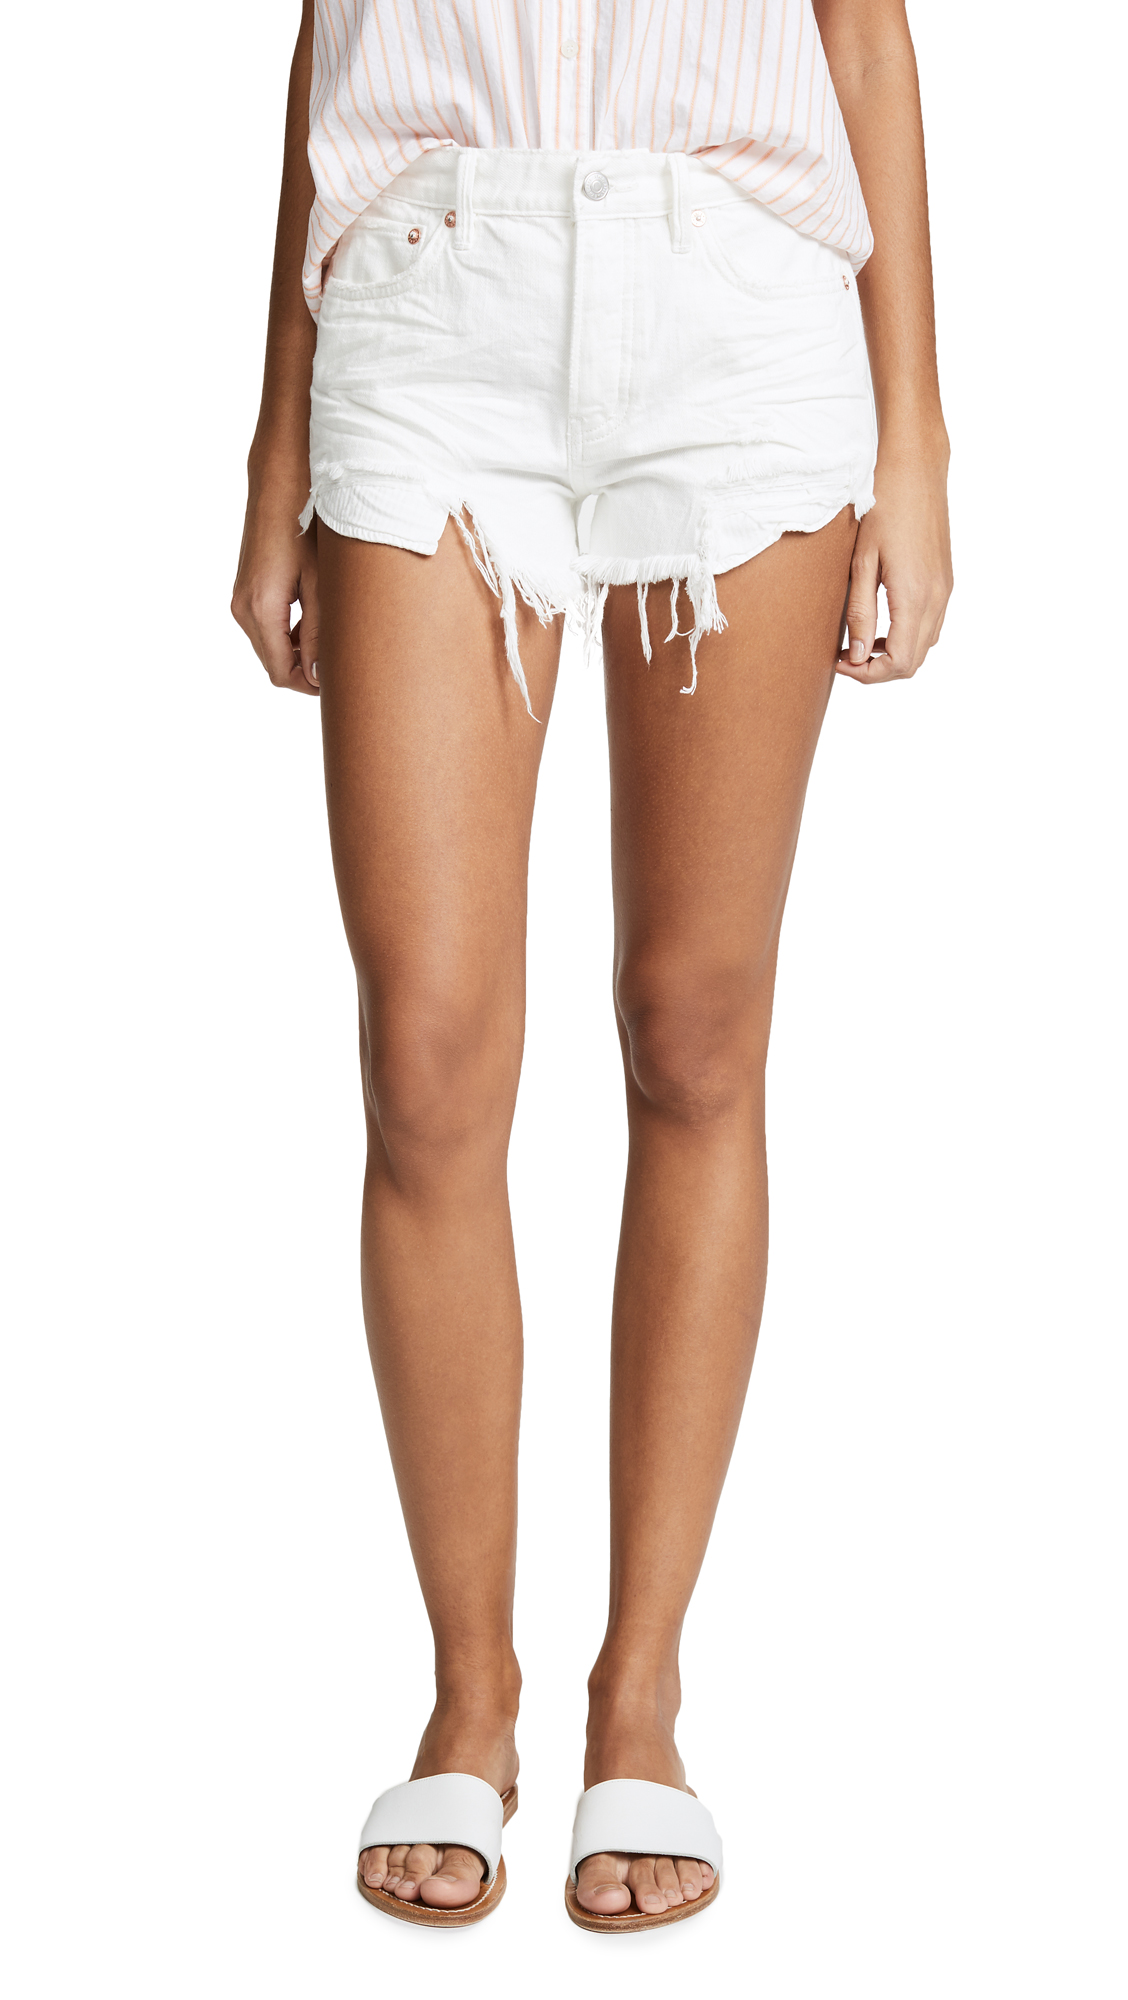 c66bcd3718d4b Free People Loving Good Vibrations Cutoff Shorts In White